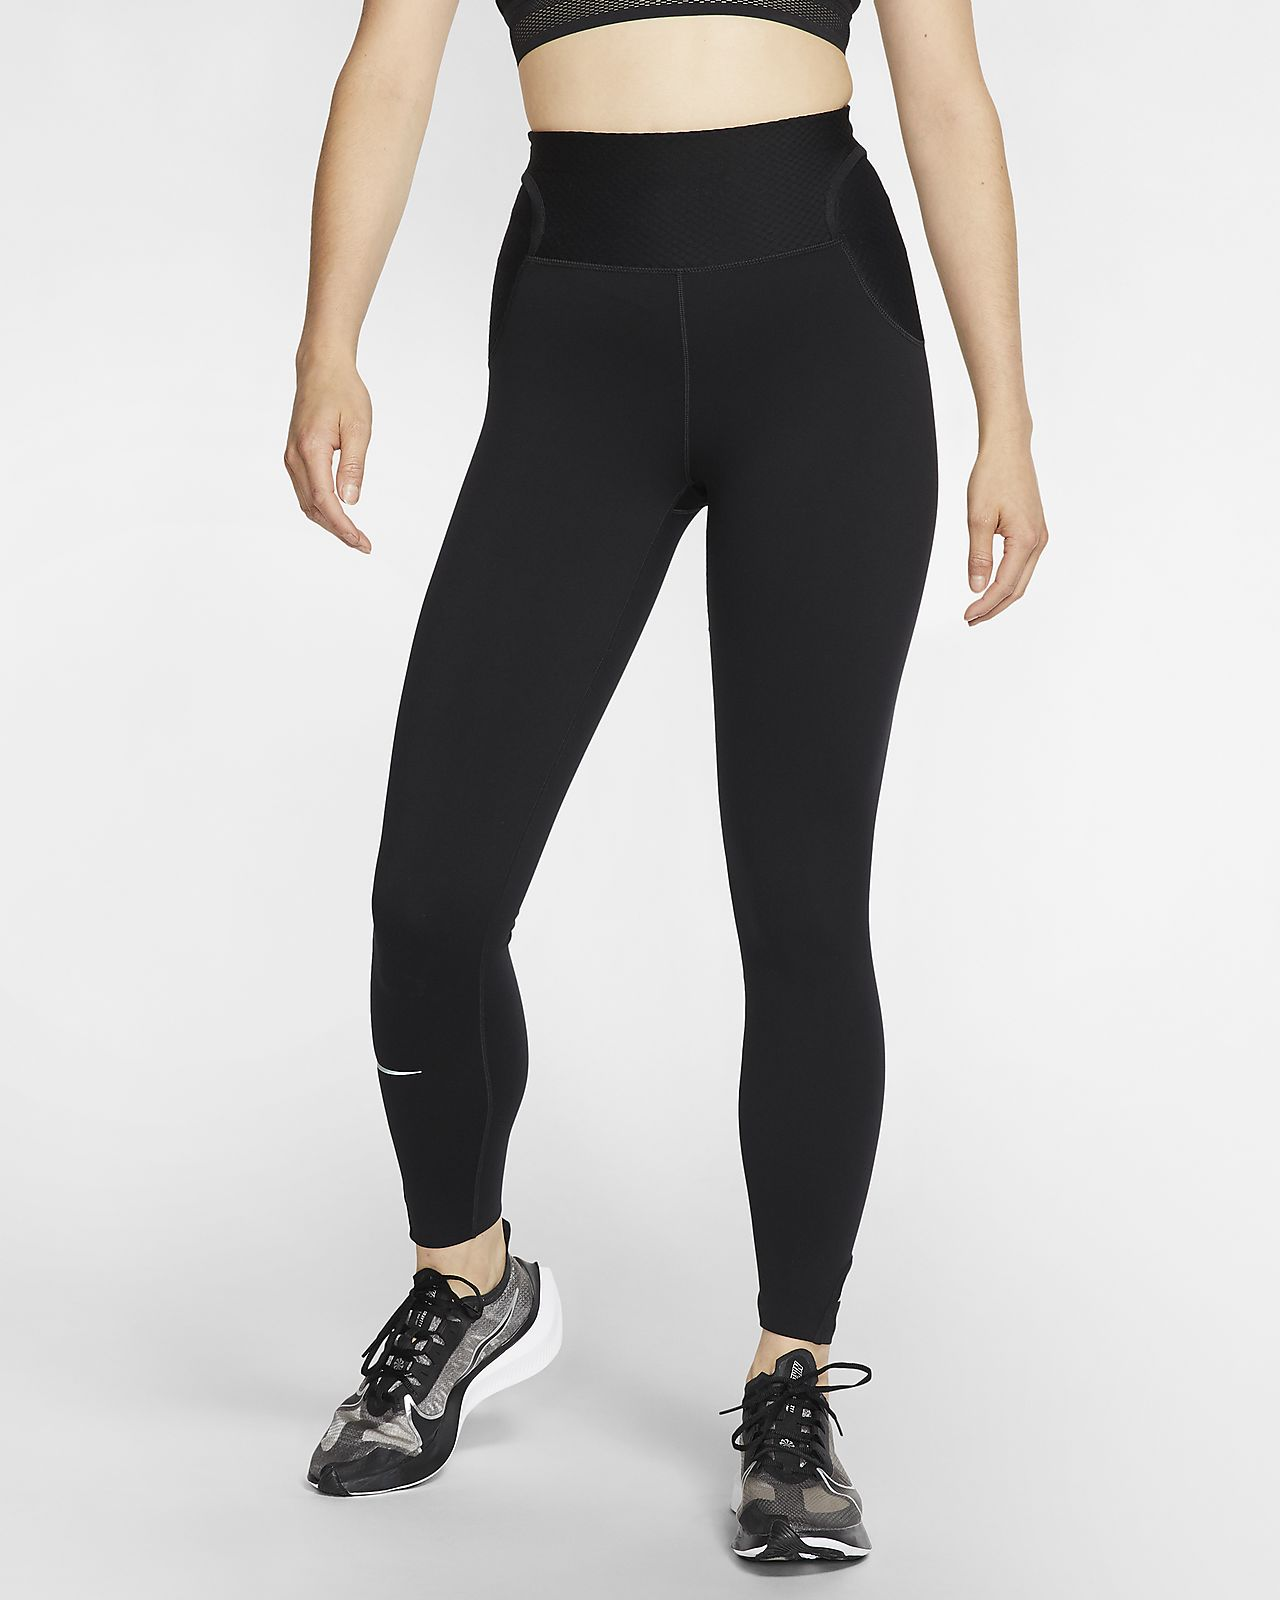 Nike City Ready Women's 7/8 Running Tights